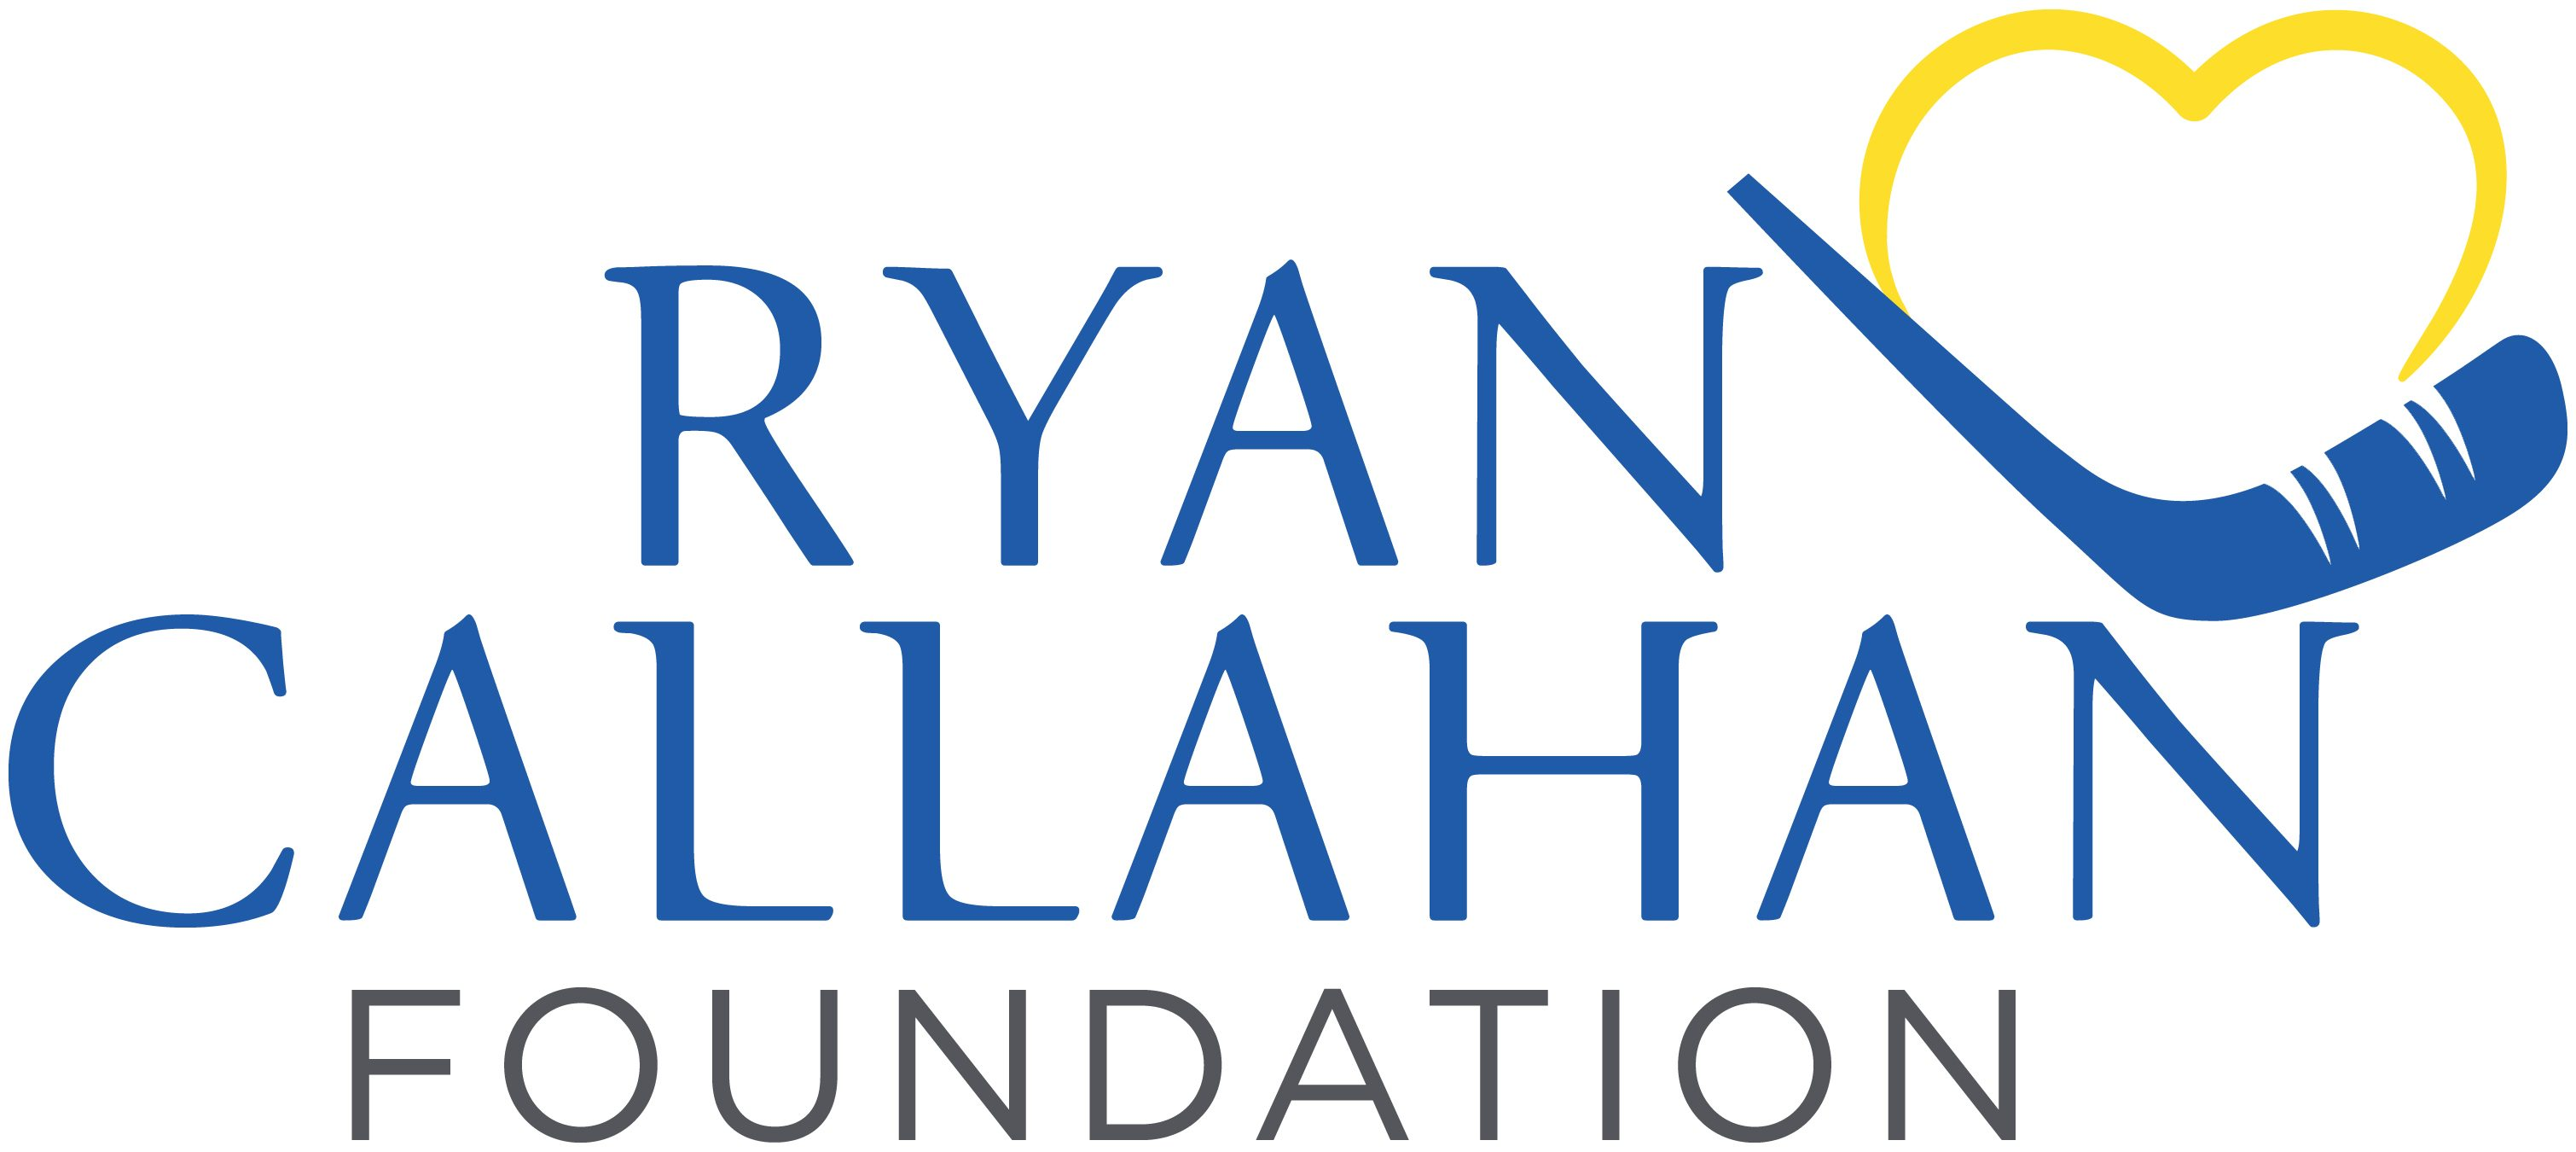 Ryan Callahan Foundation